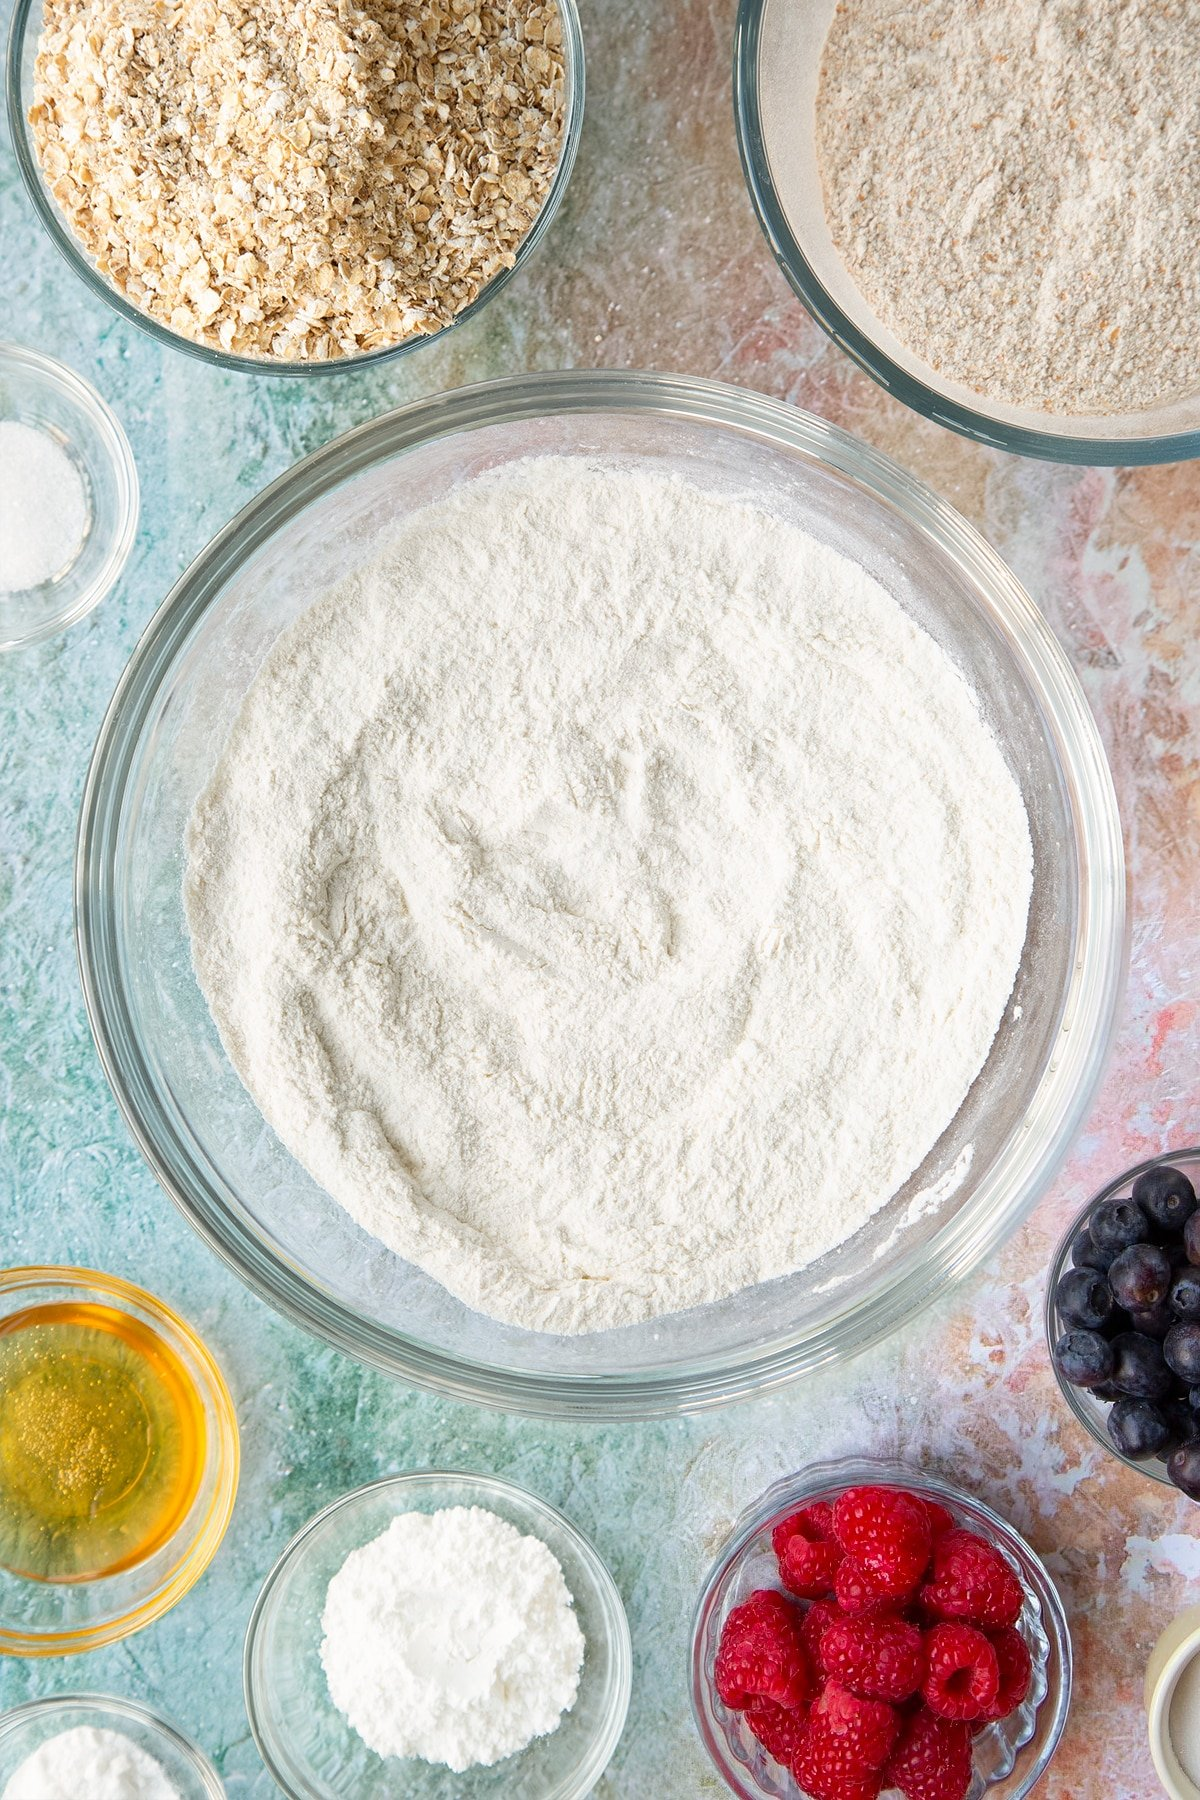 Self-raising flour, bicarbonate of soda and sugar combined in a glass mixing bowl. Ingredients to make oatmeal scones surround the bowl.